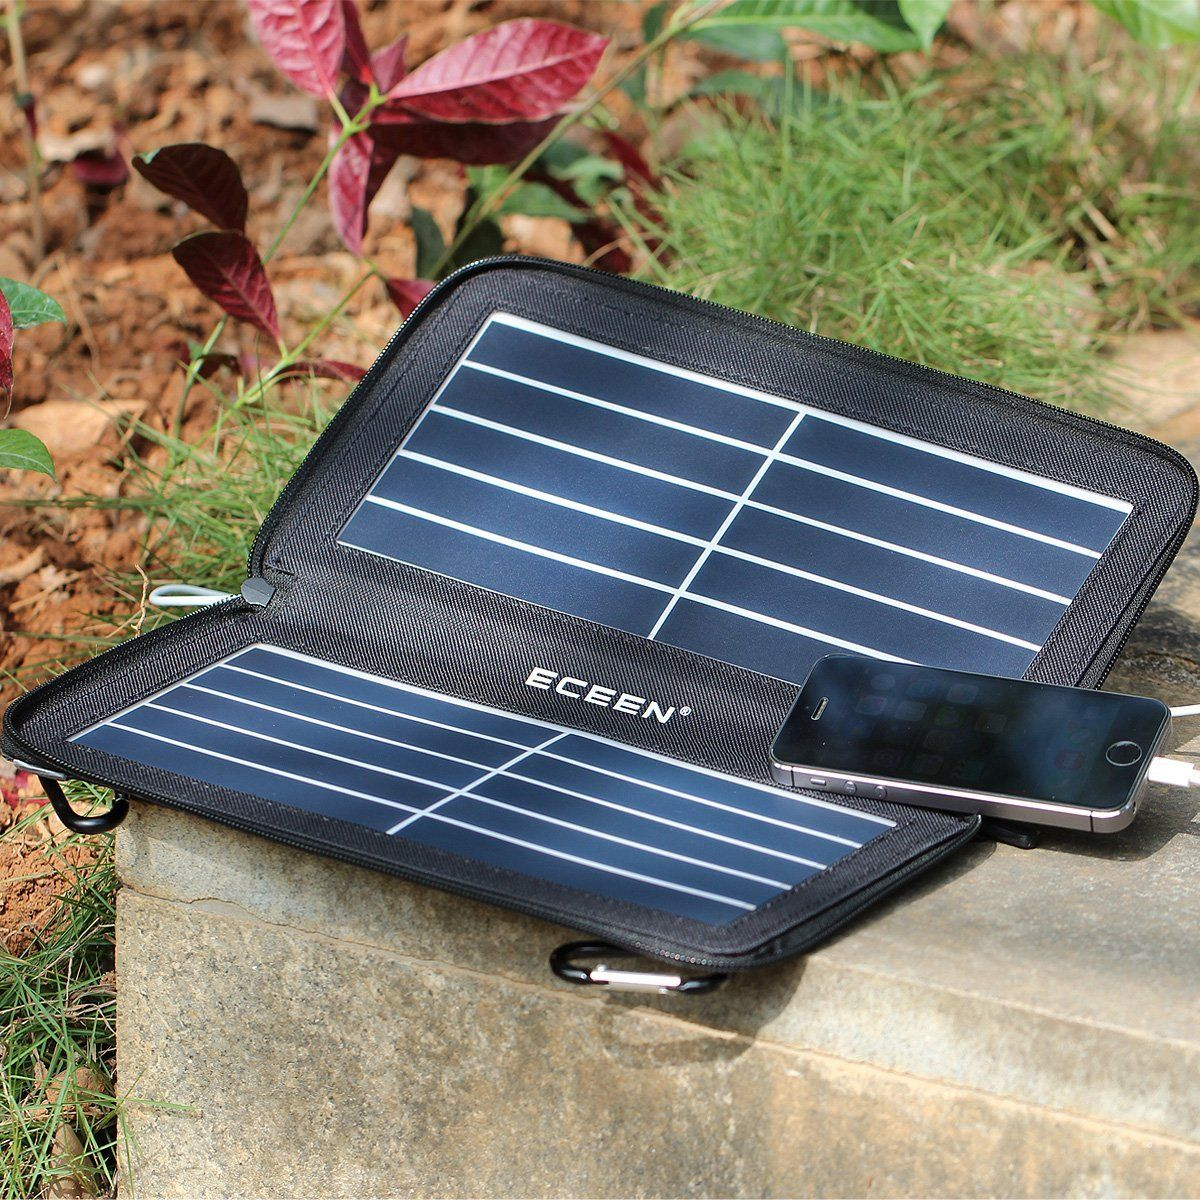 Robot Check Solar Charger Portable Solar Panel Charger Solar Charger